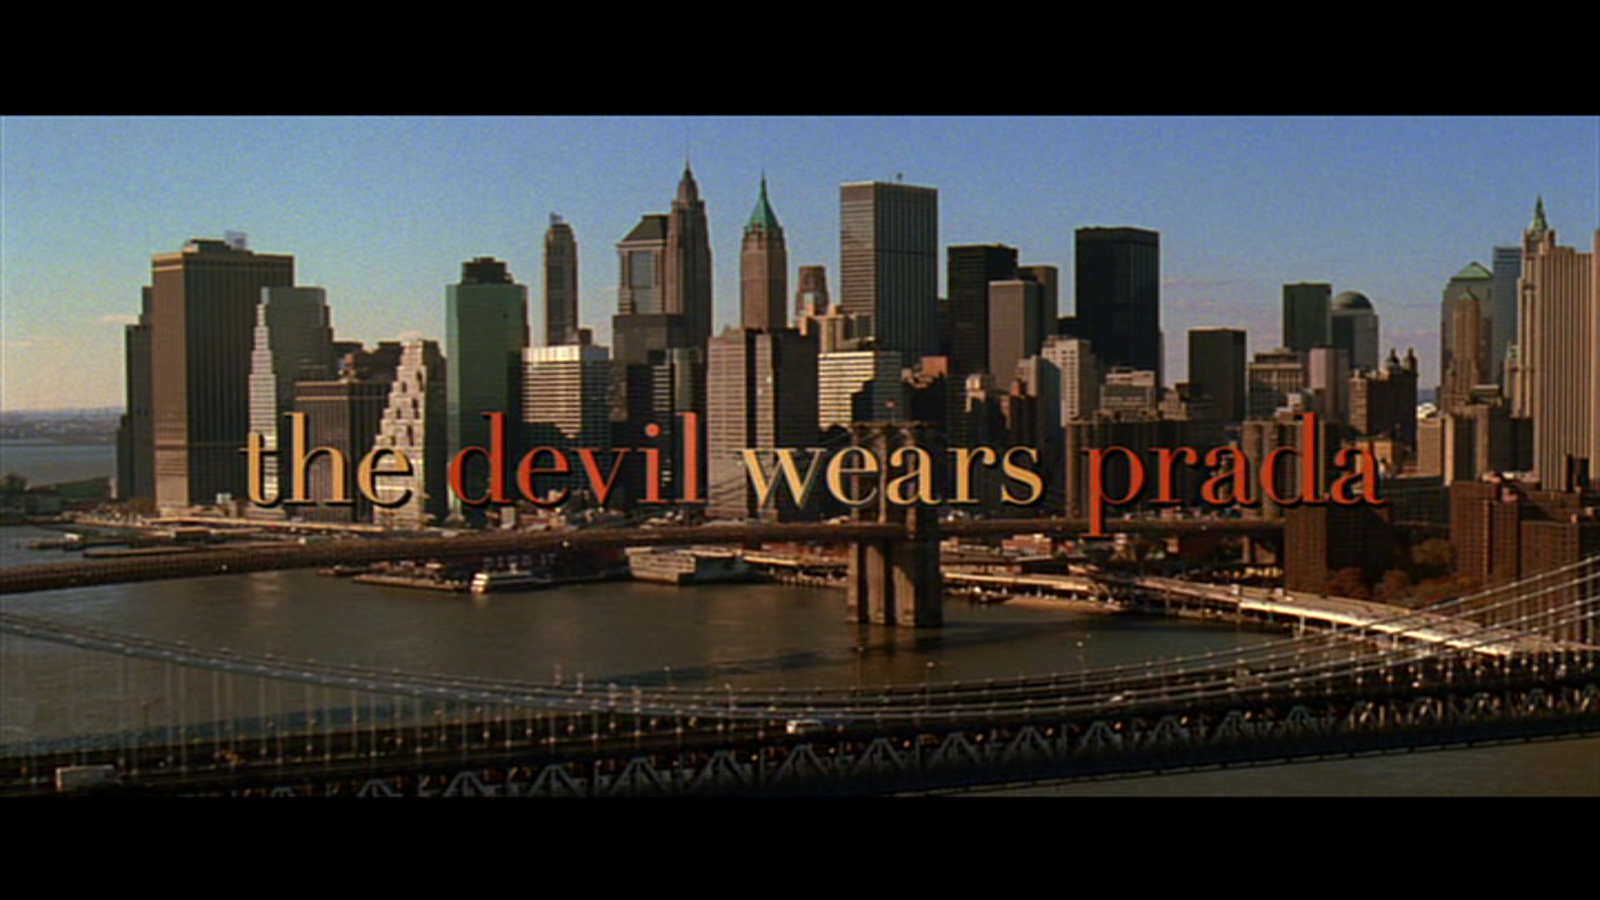 The Devil Wears Prada Opens With A Shot Of Brooklyn Bridge So Audience Knows